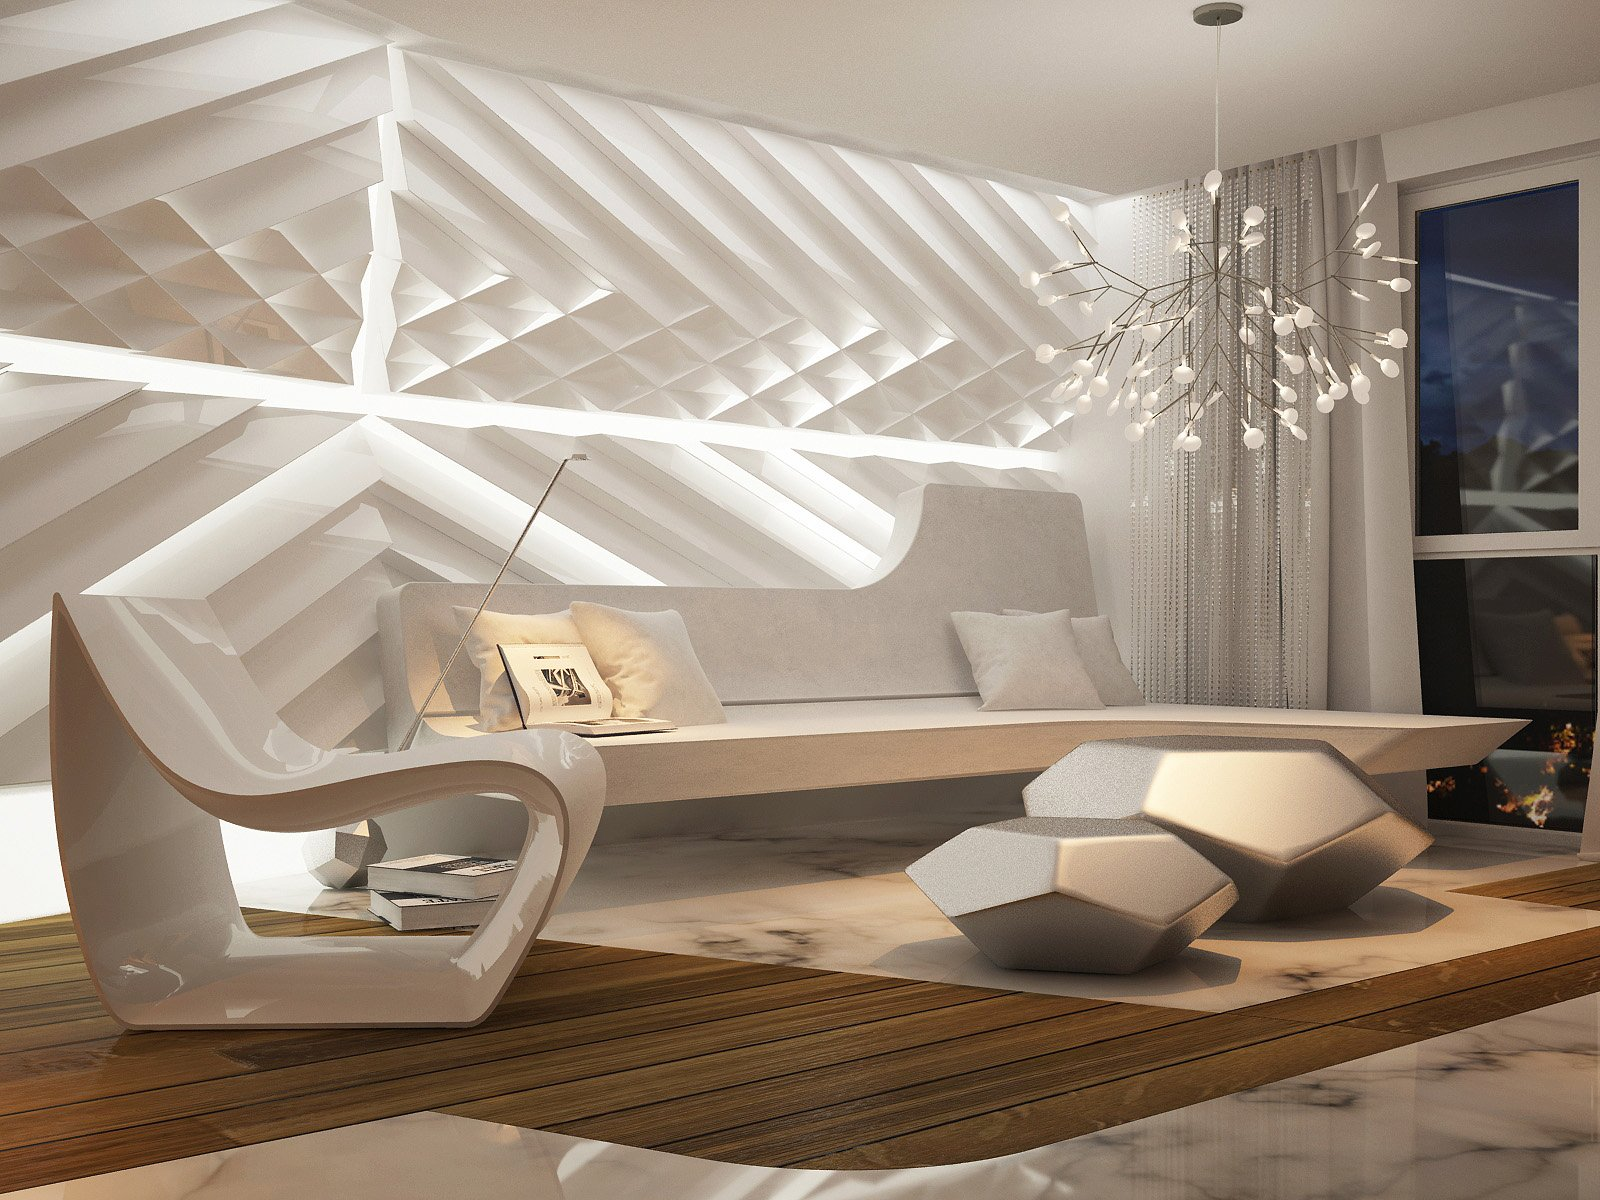 Futuristic furniture | Source: livinator.com